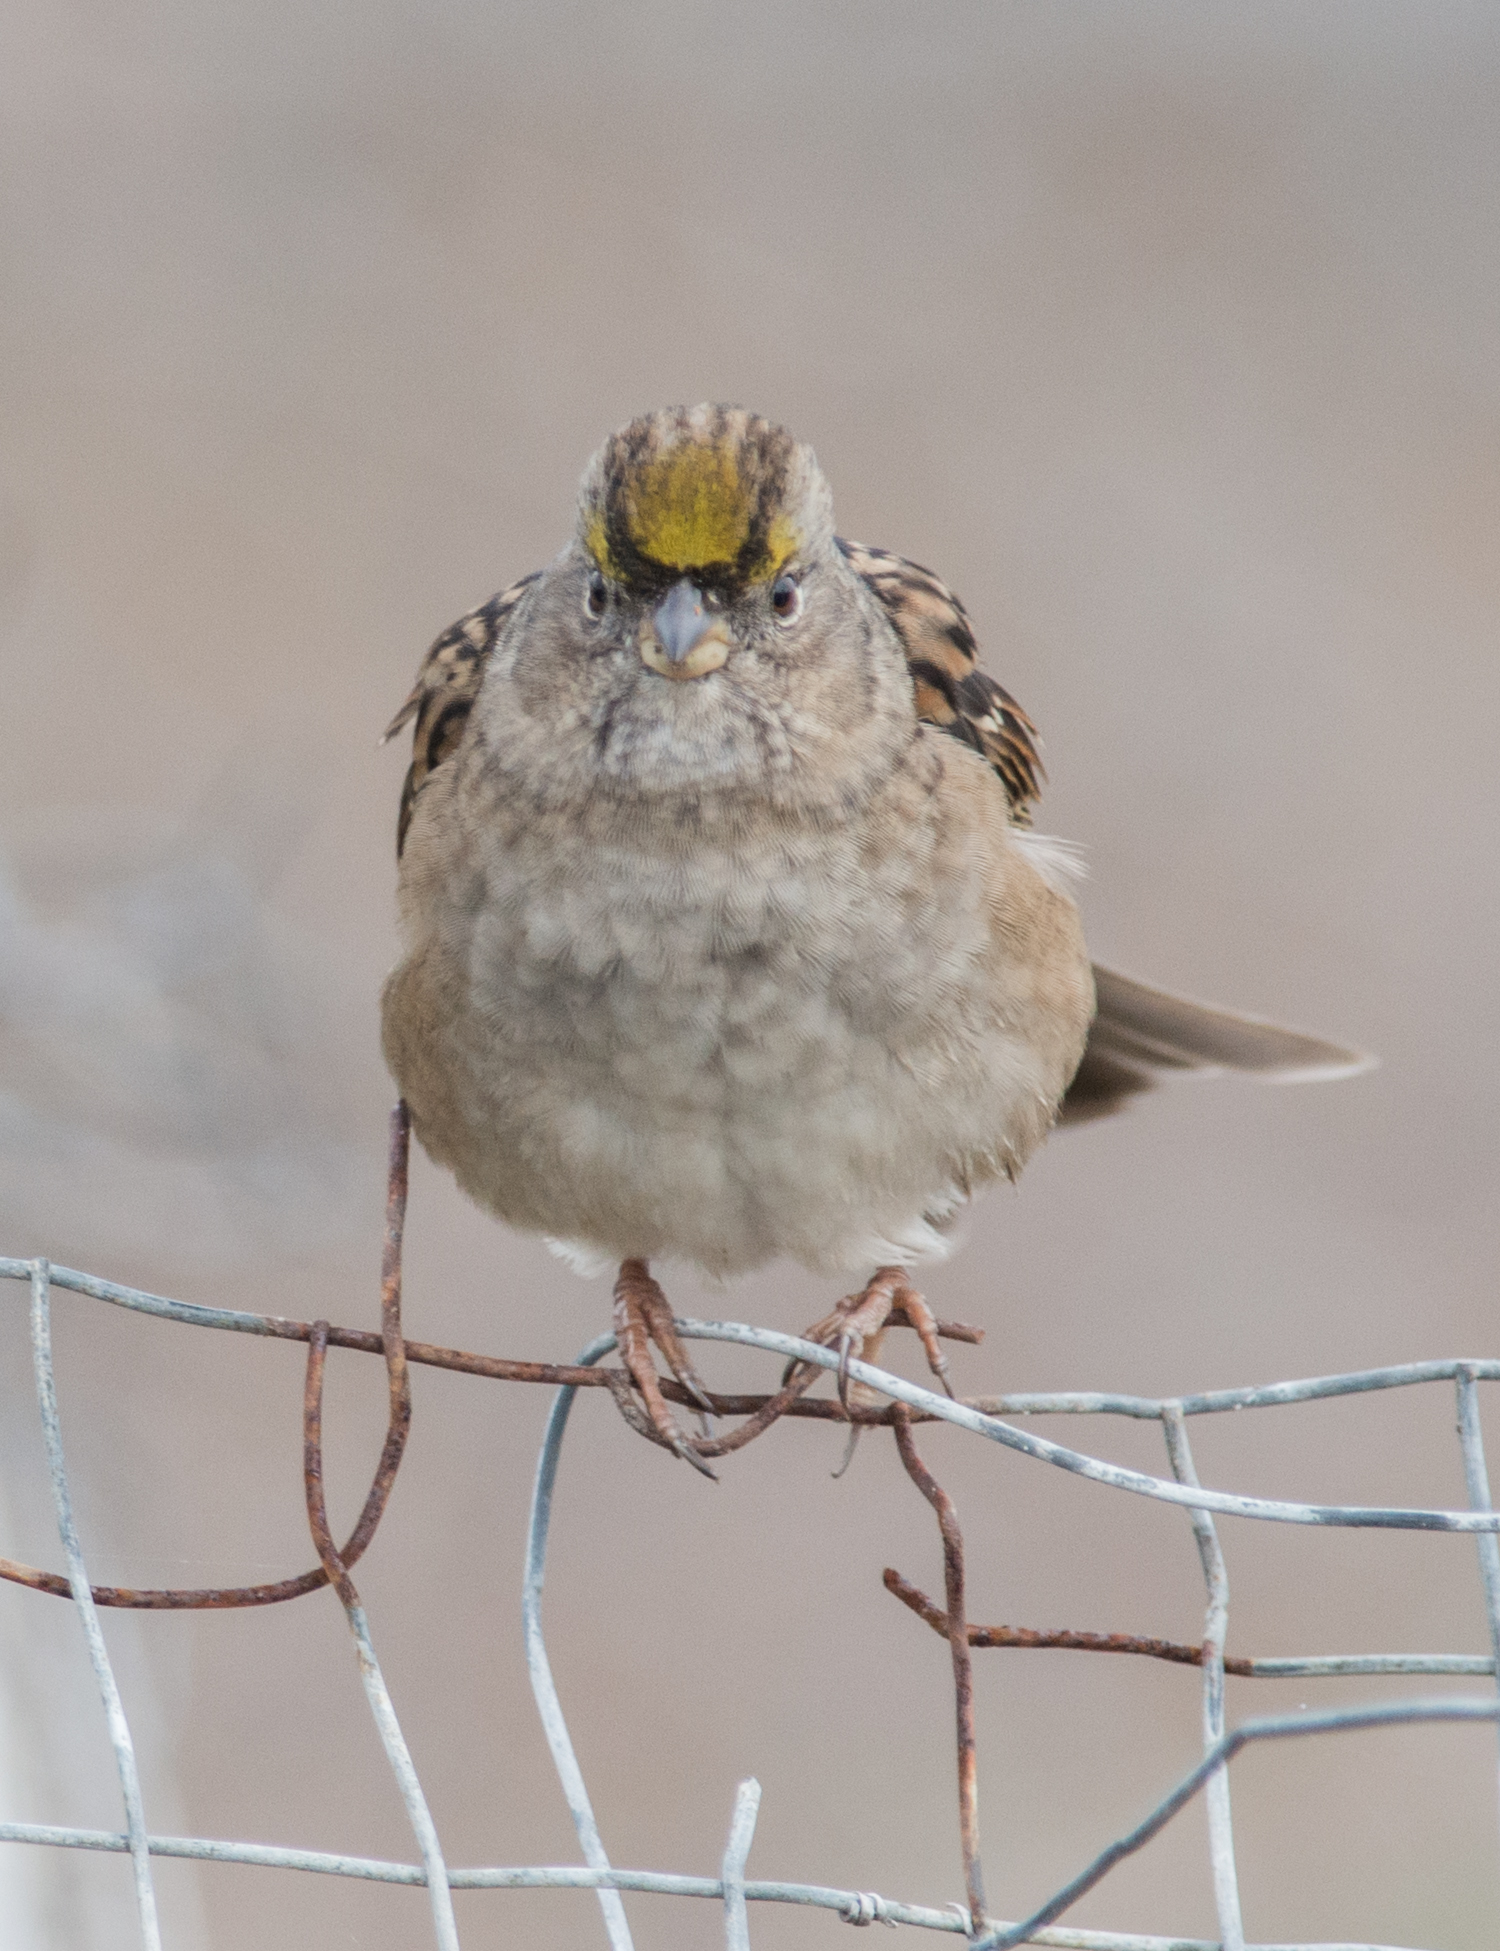 Golden-crowned Sparrow (Zonotrichia atricapilla)   500mm,  1/1000,  f/5.6 , ISO900  10-09-14 10:38 Overcast